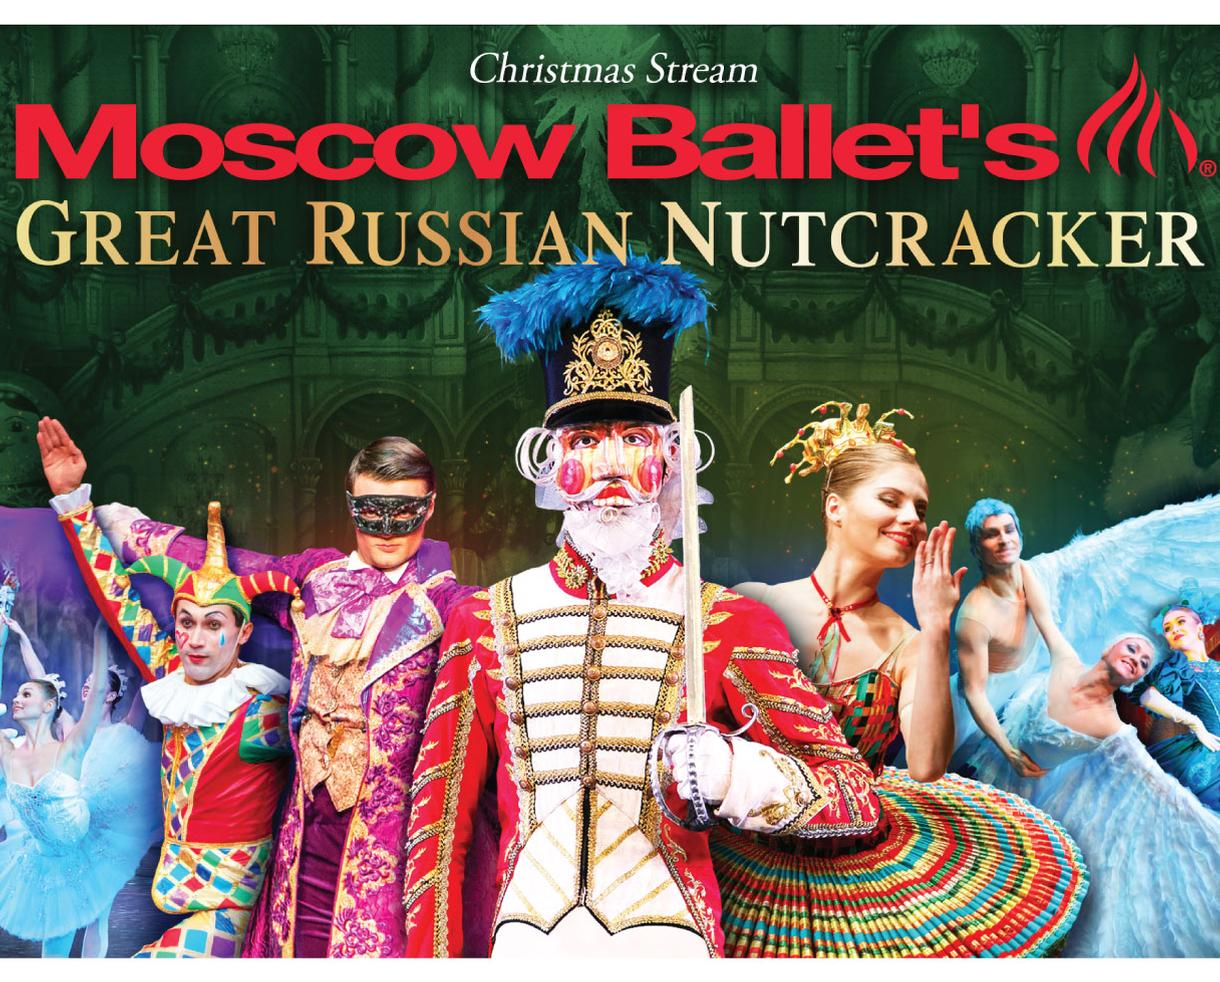 The Moscow Ballet's Great Russian Nutcracker: Christmas Stream